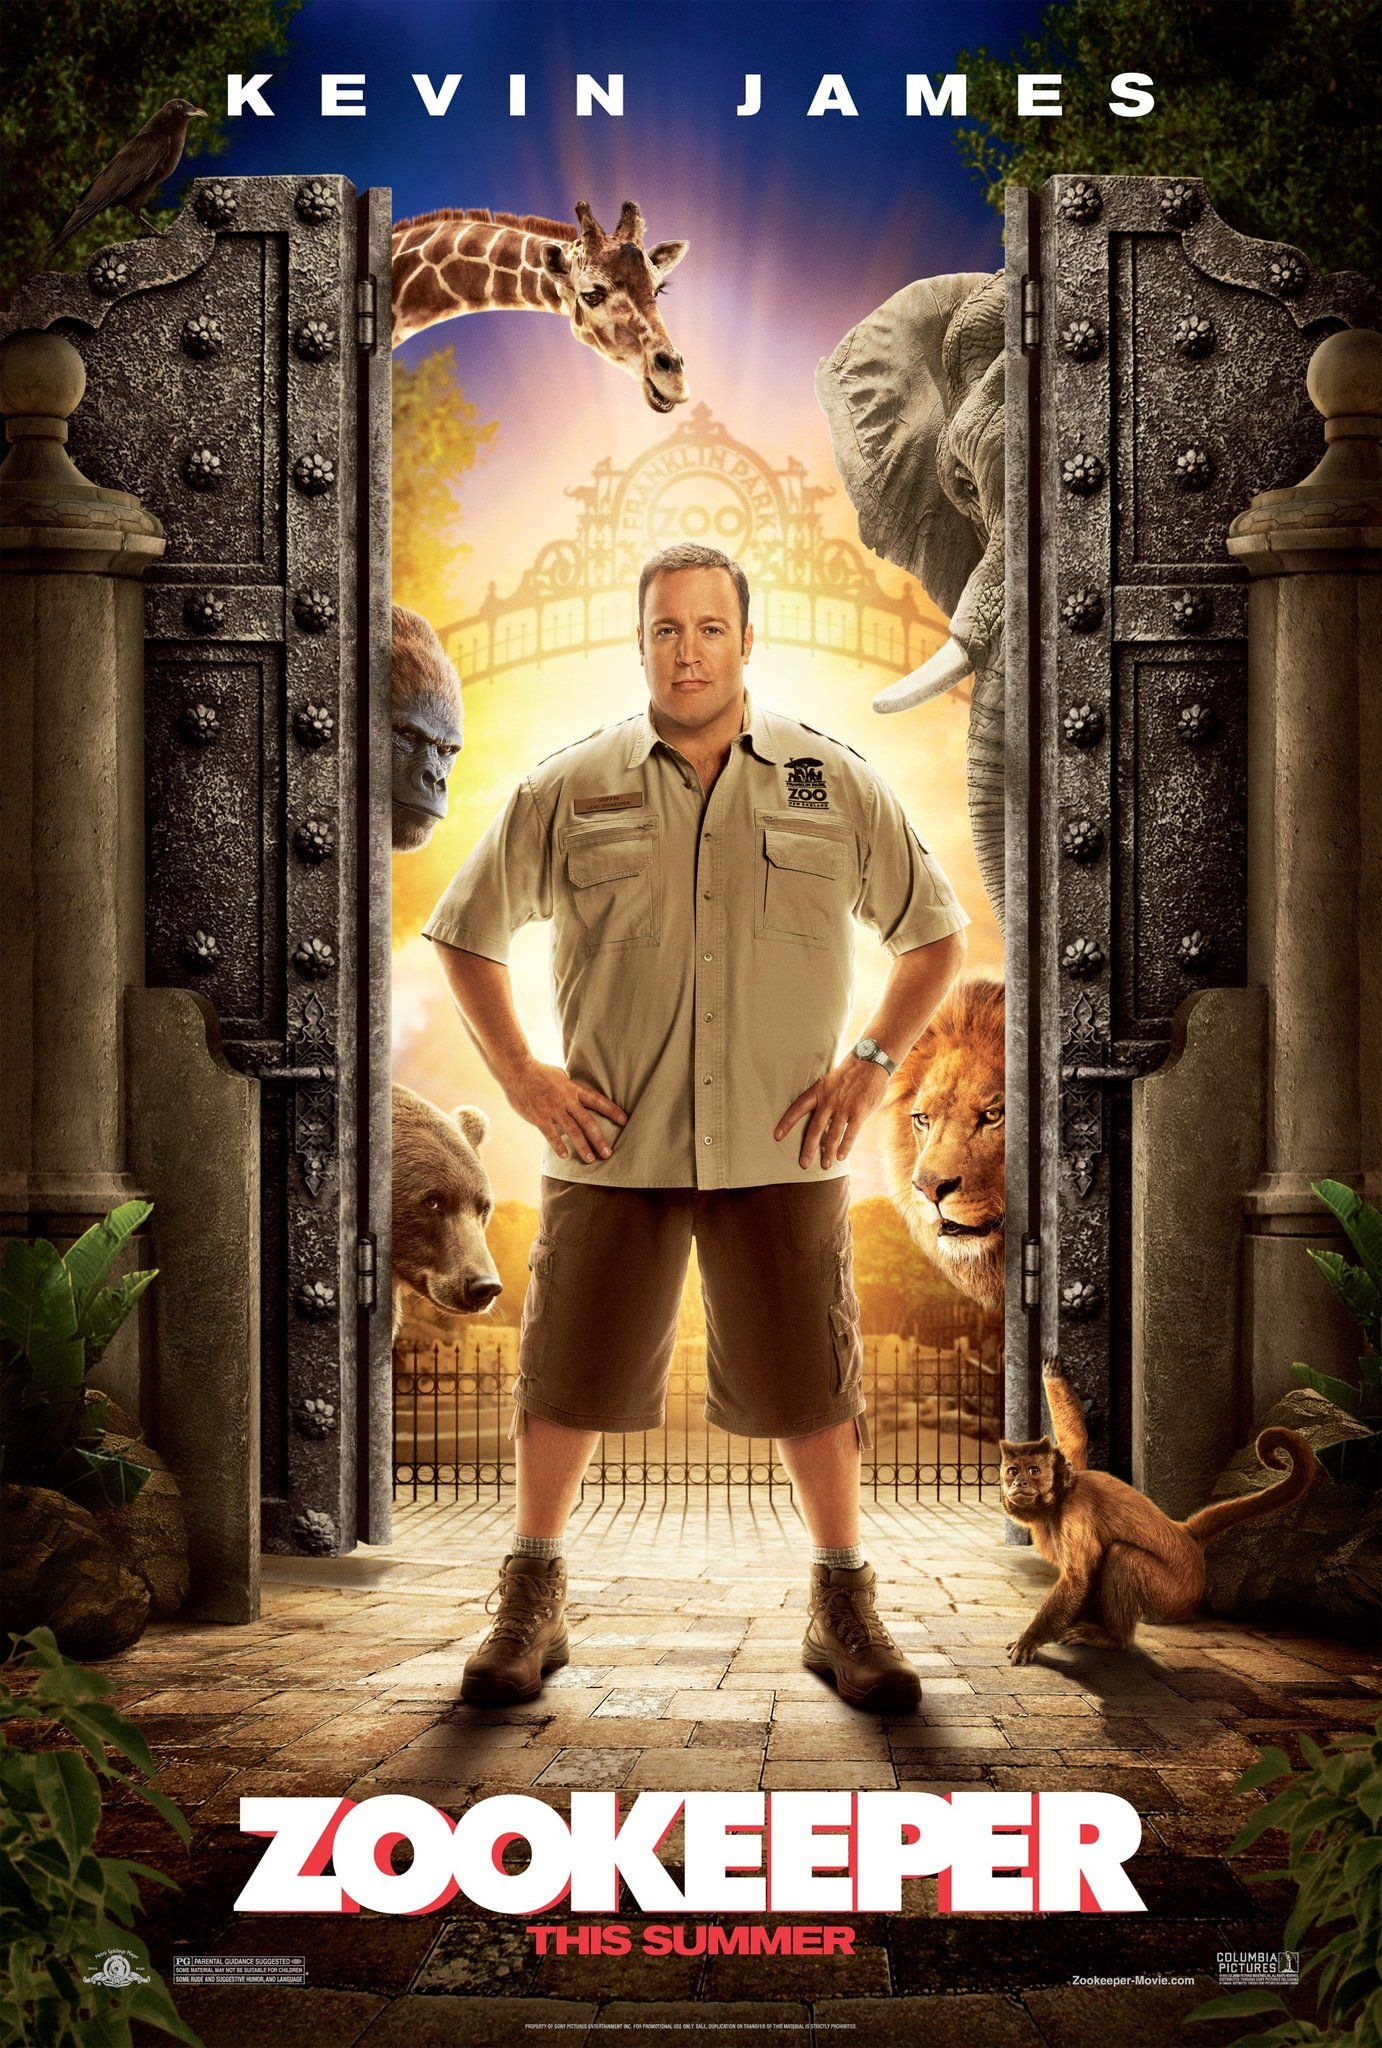 Zookeeper (2011) Bluray 720p Comedy movies, Kevin james